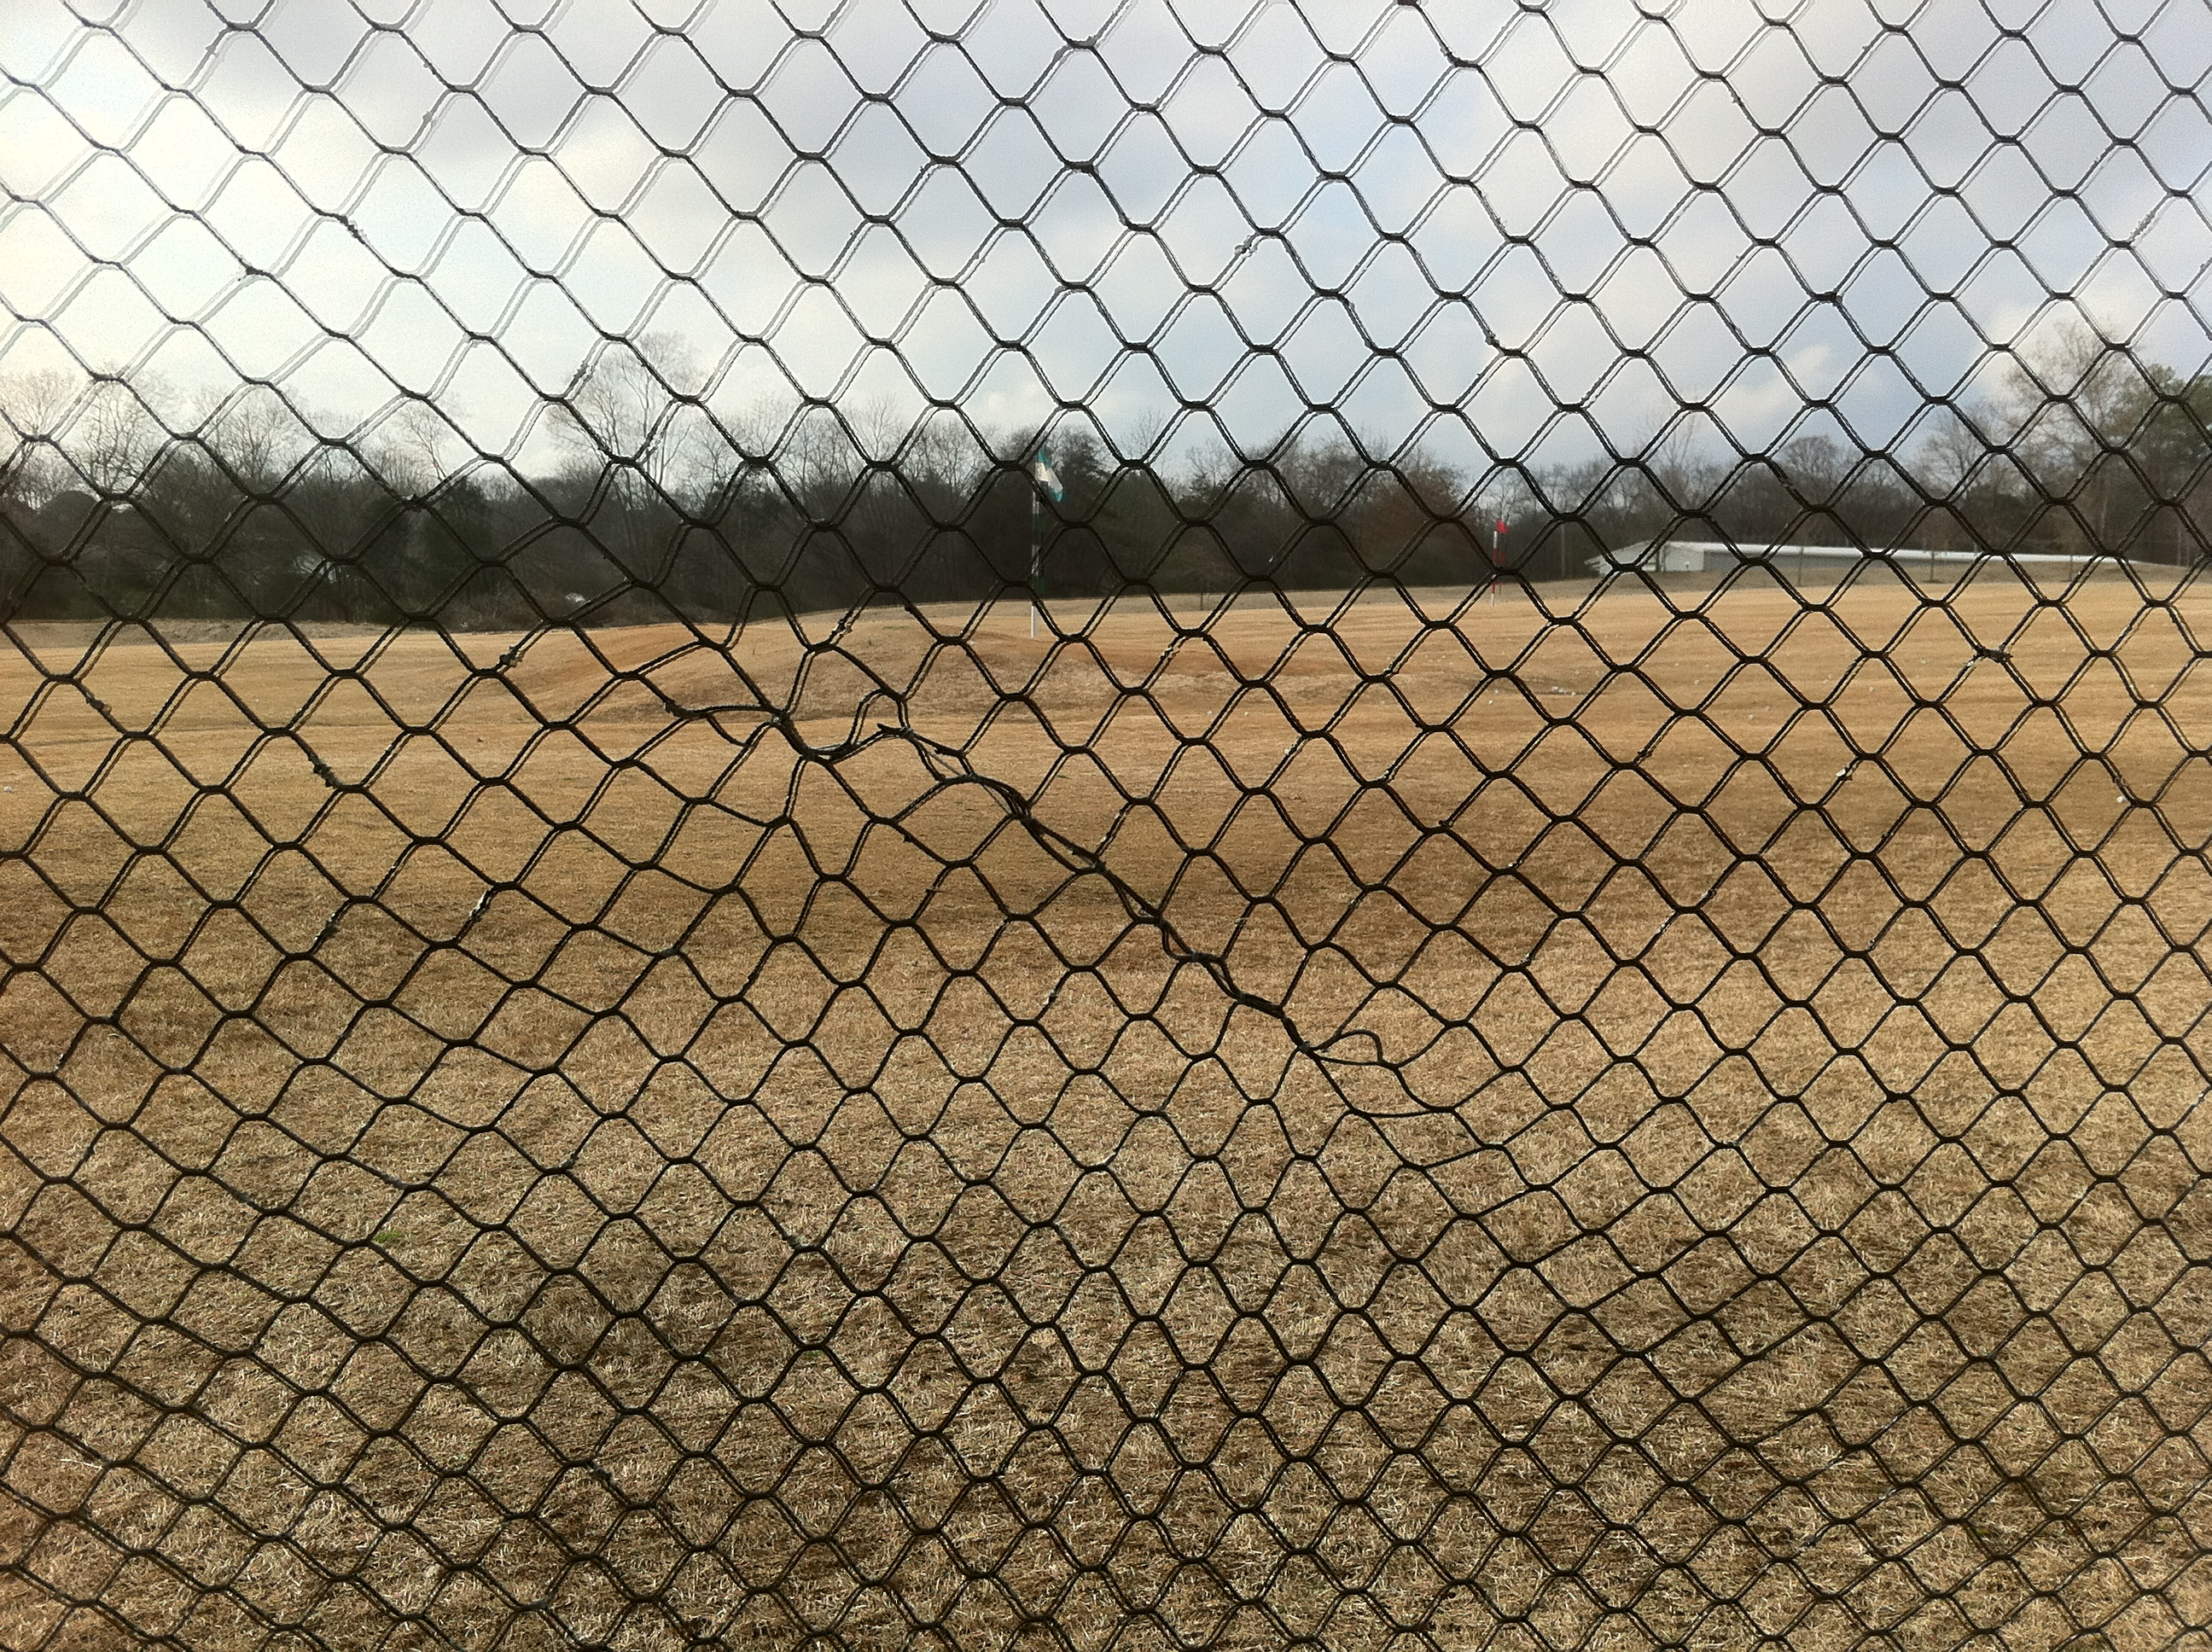 Hole Repaired in the Driving Range Net